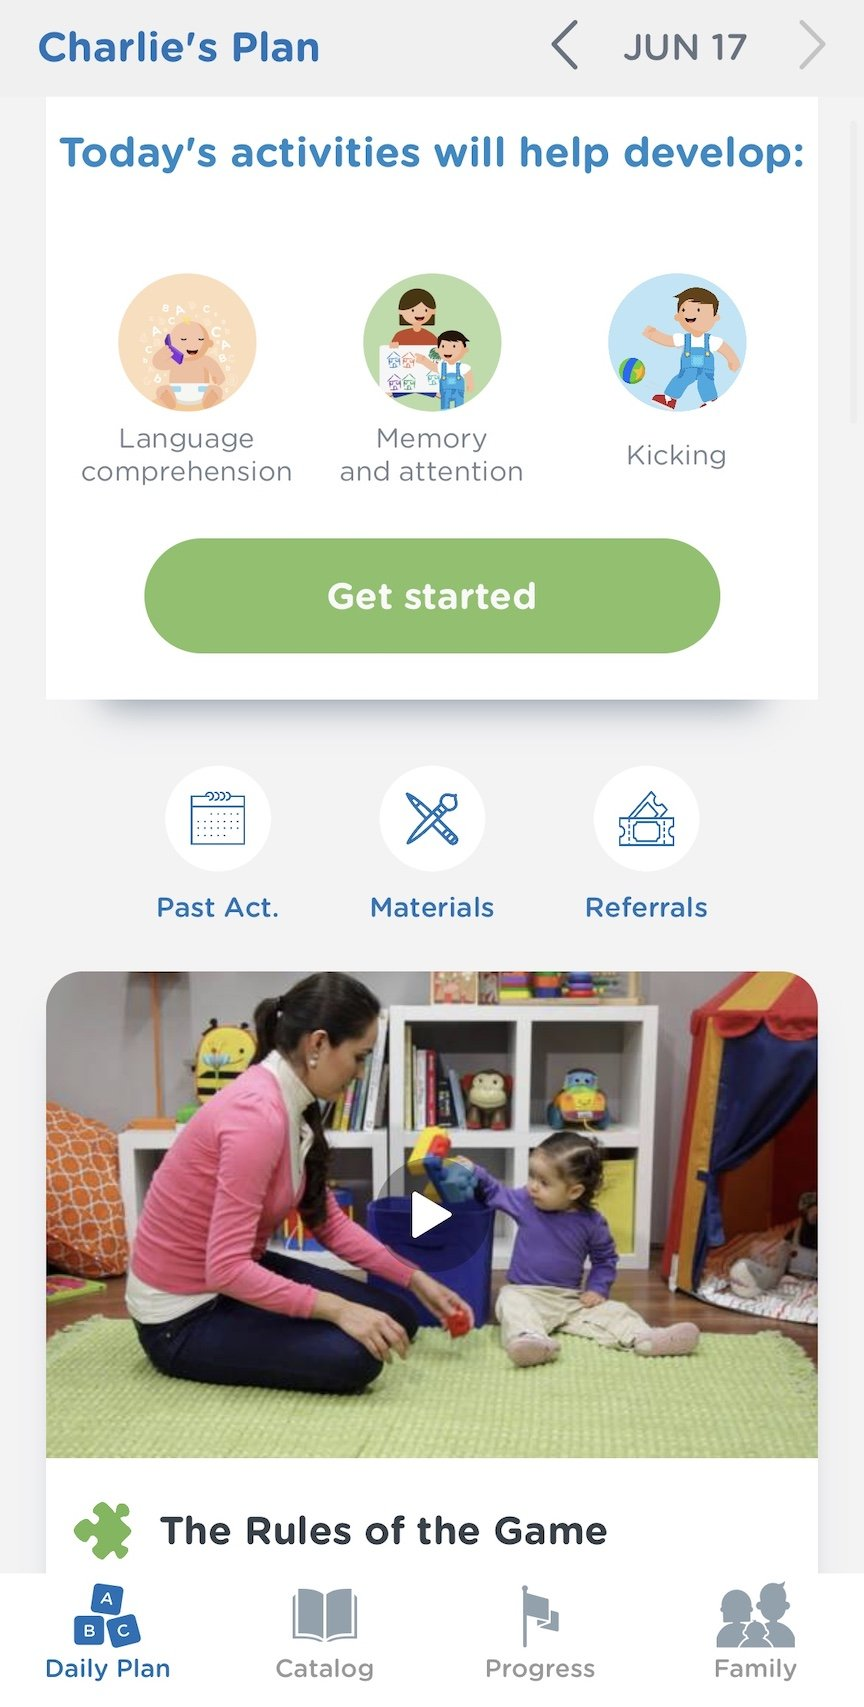 Personalized activity plan according to your baby's developmental stage.